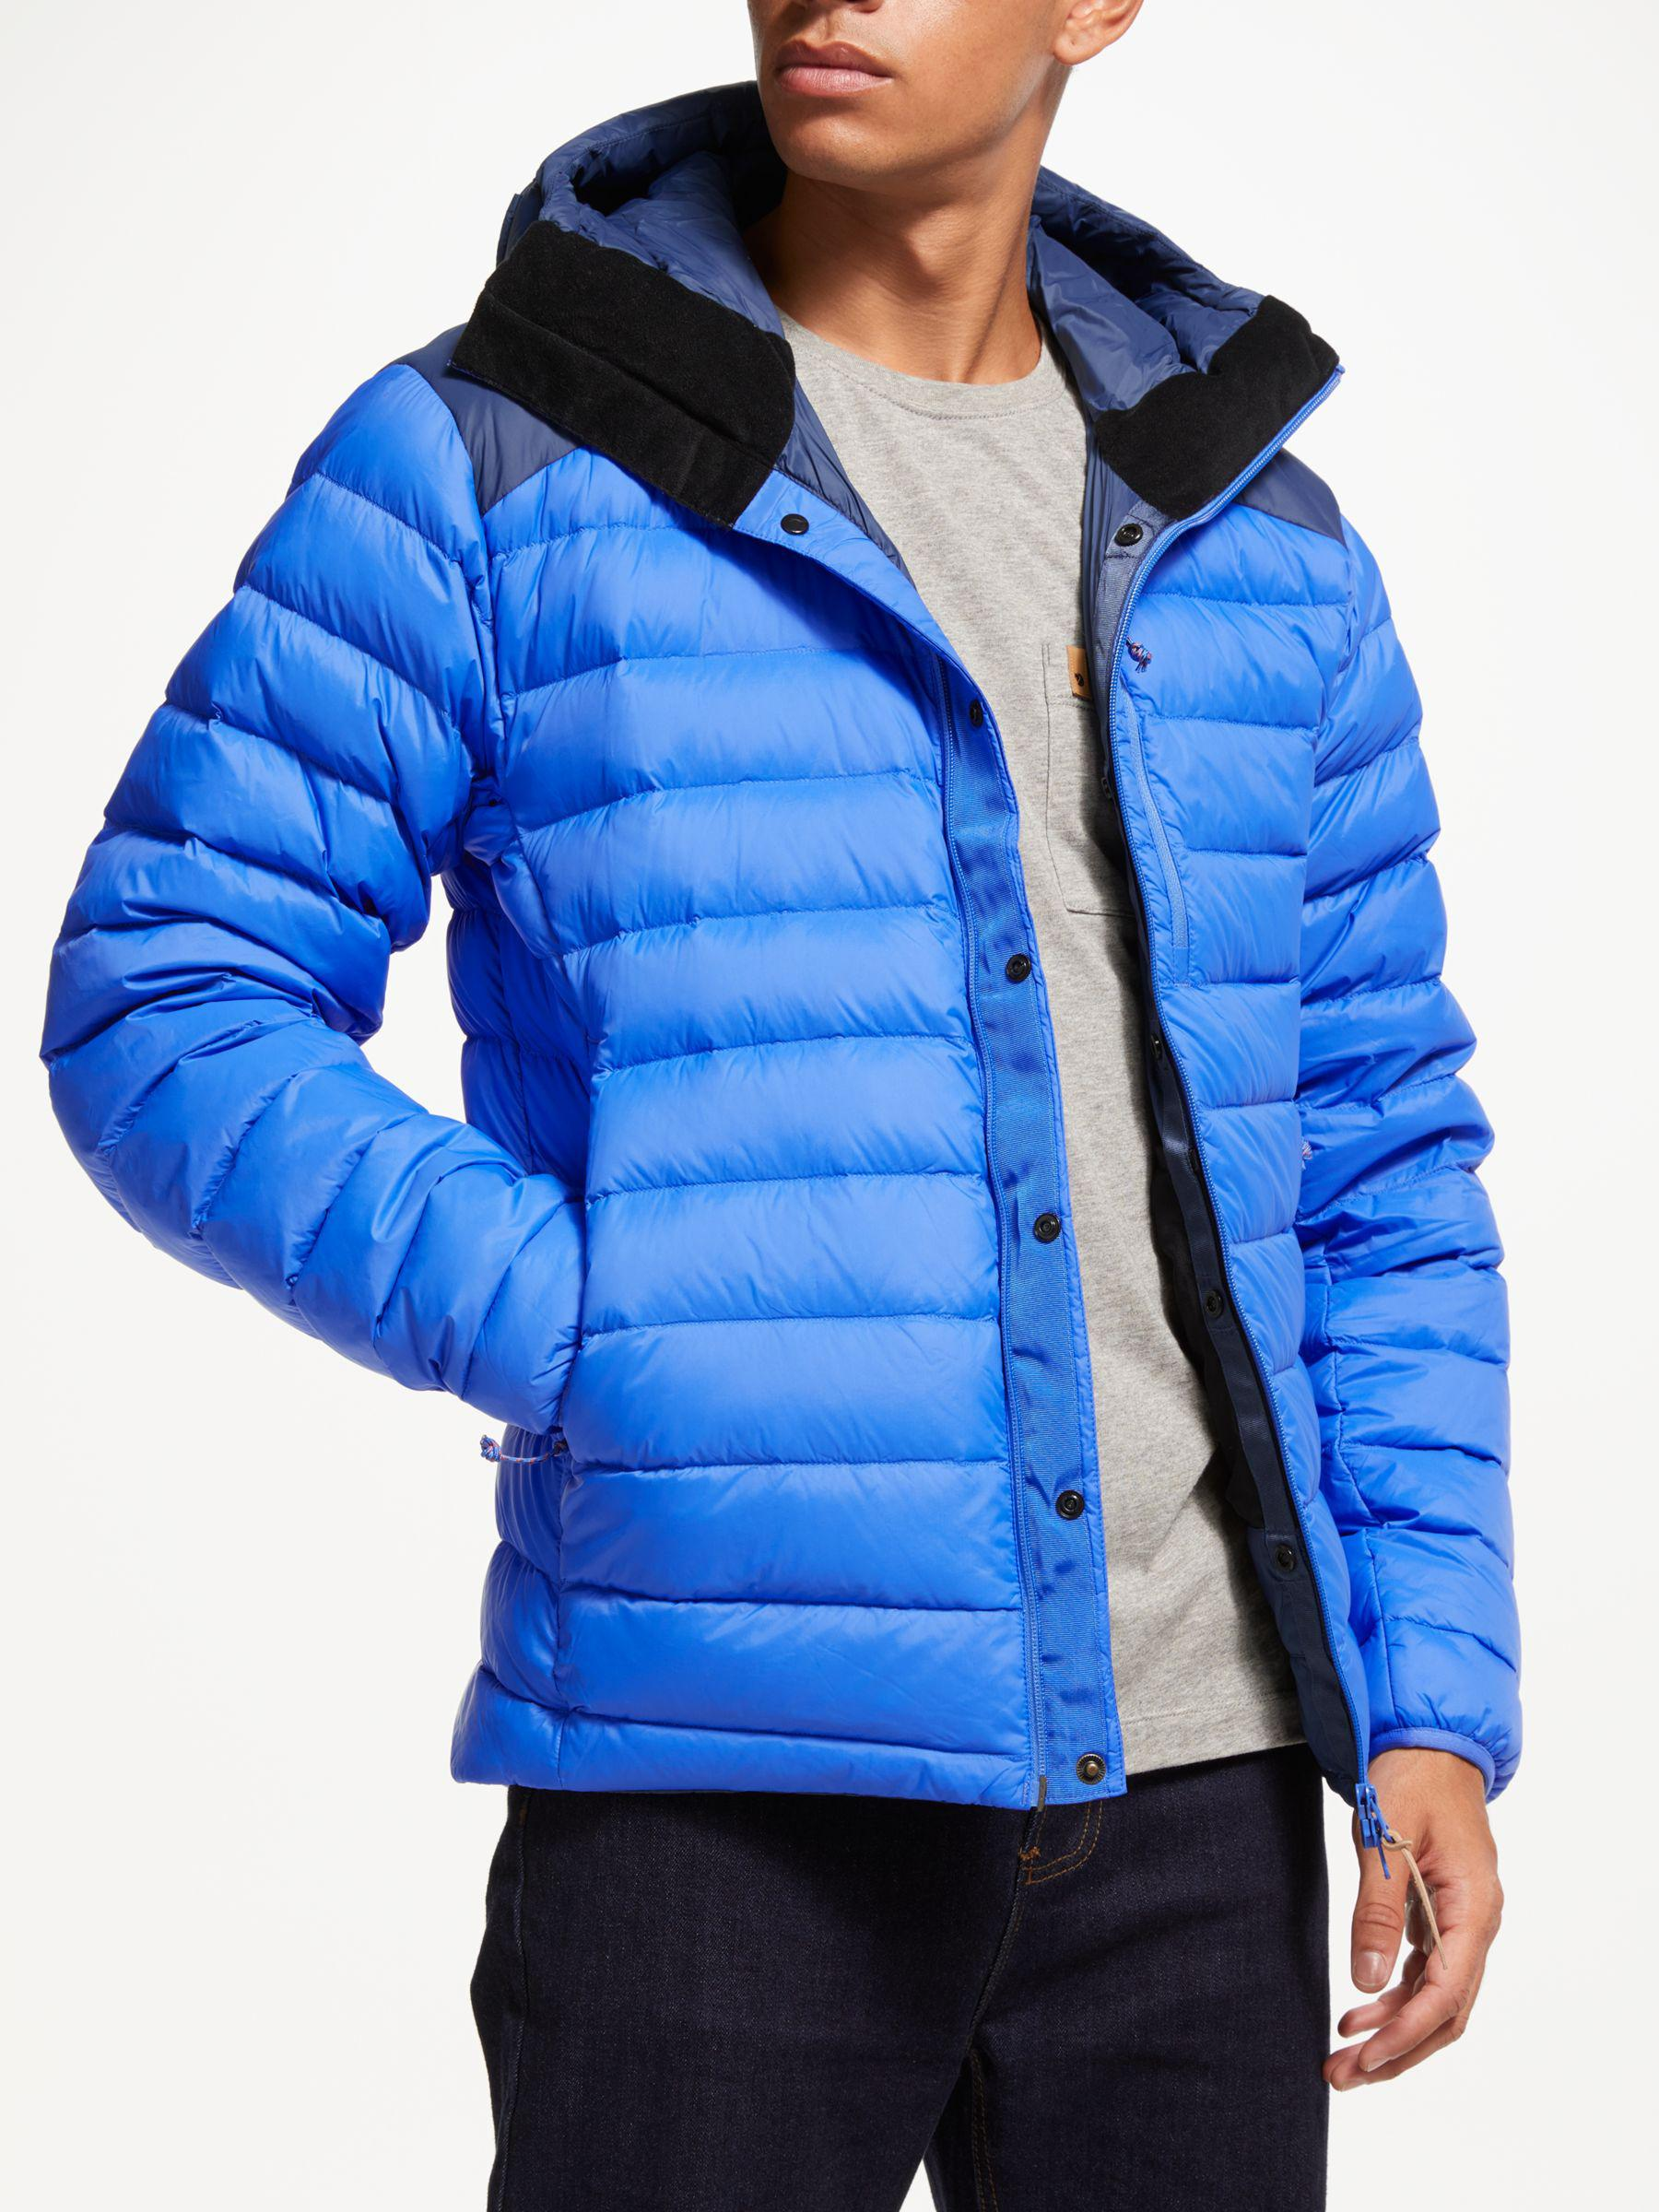 70a47fd1b8 Fjallraven Keb Touring Down Puffer Jacket in Blue for Men - Lyst